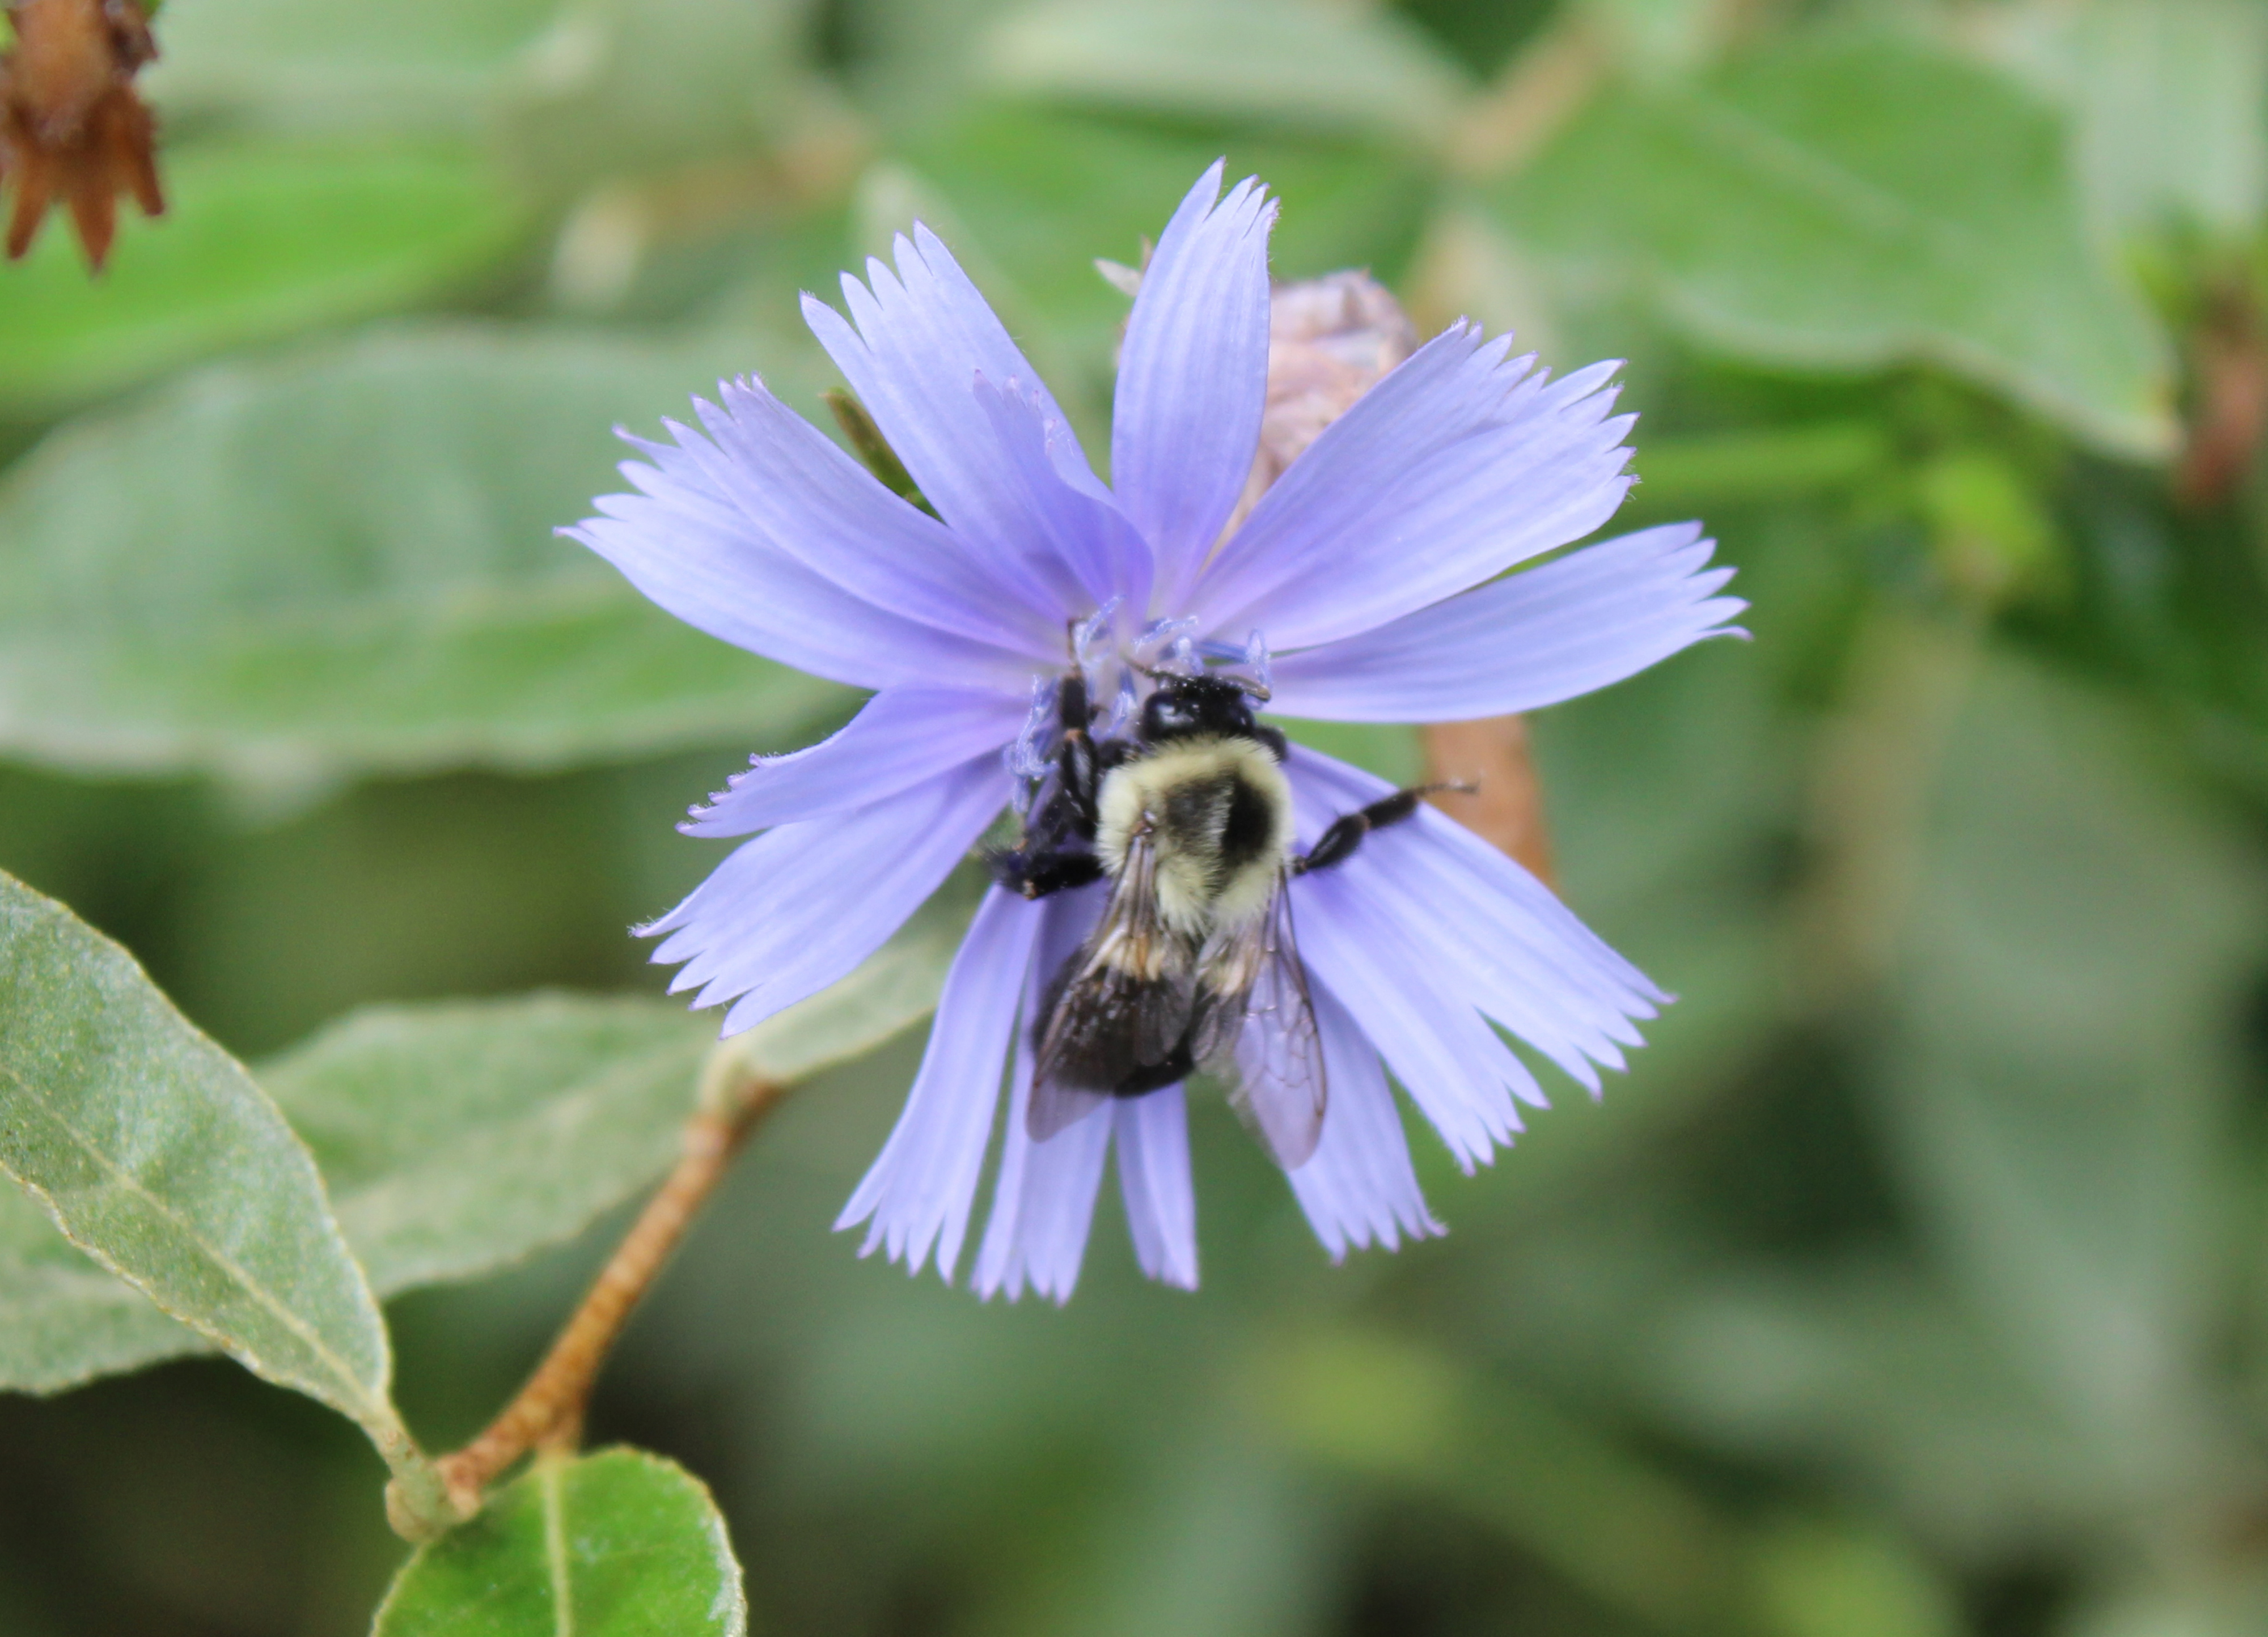 Bumblebee on chicory flower